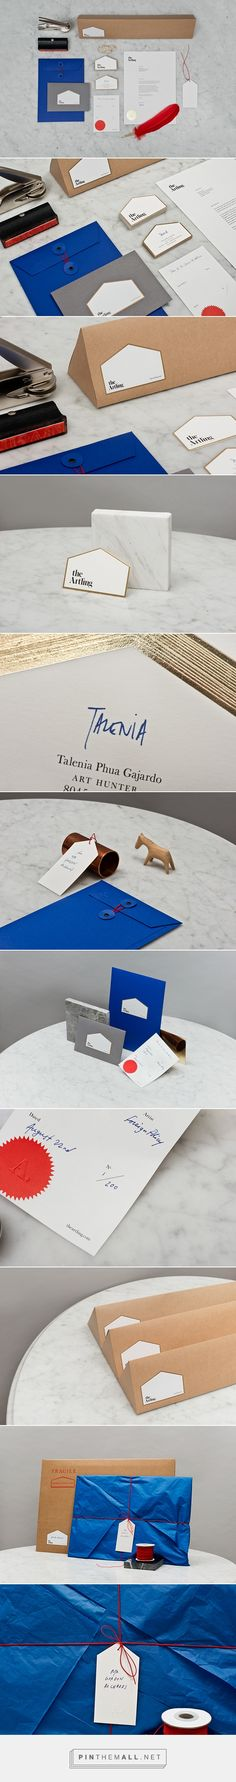 The Artling on Behance... - a grouped images picture - Pin Them All